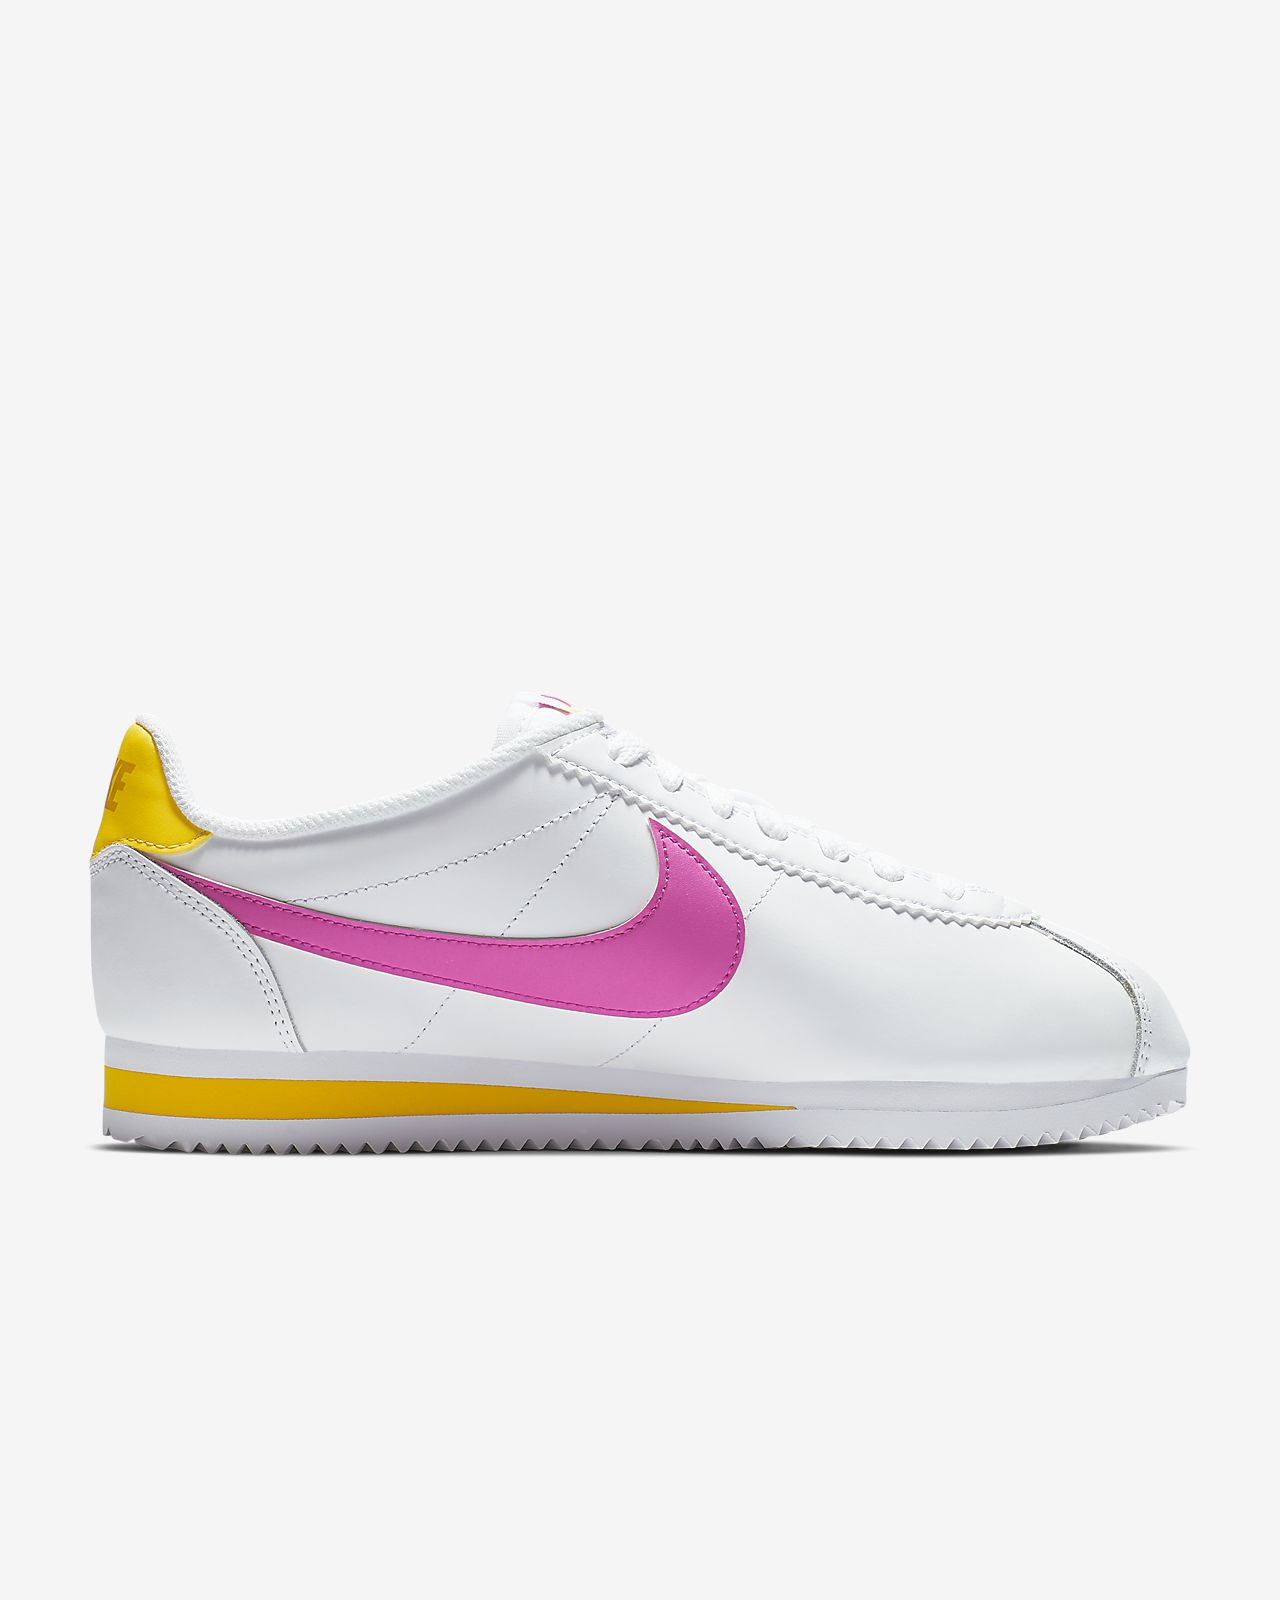 on sale 41b4c f9a40 Low Resolution Nike Classic Cortez Damenschuh Nike Classic Cortez Damenschuh